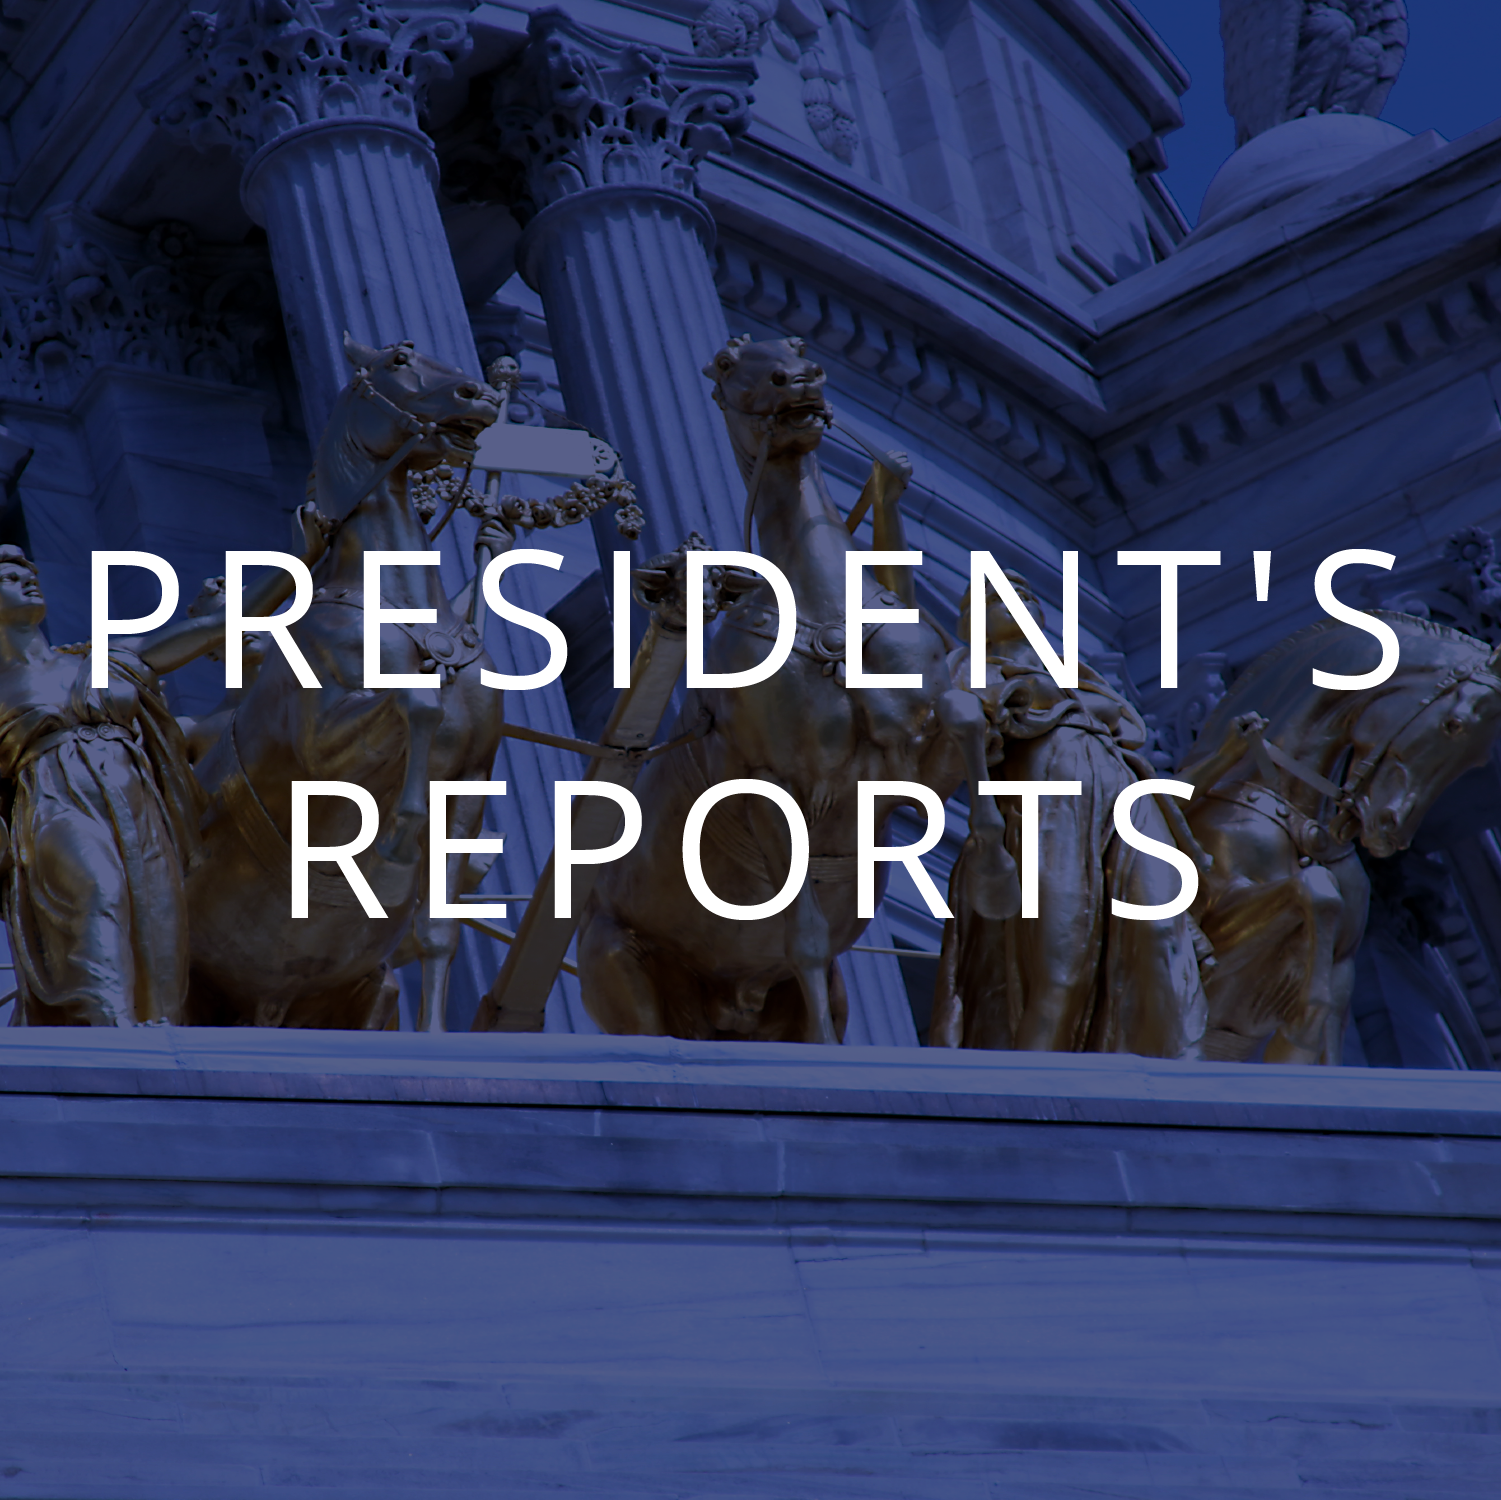 President's Reports